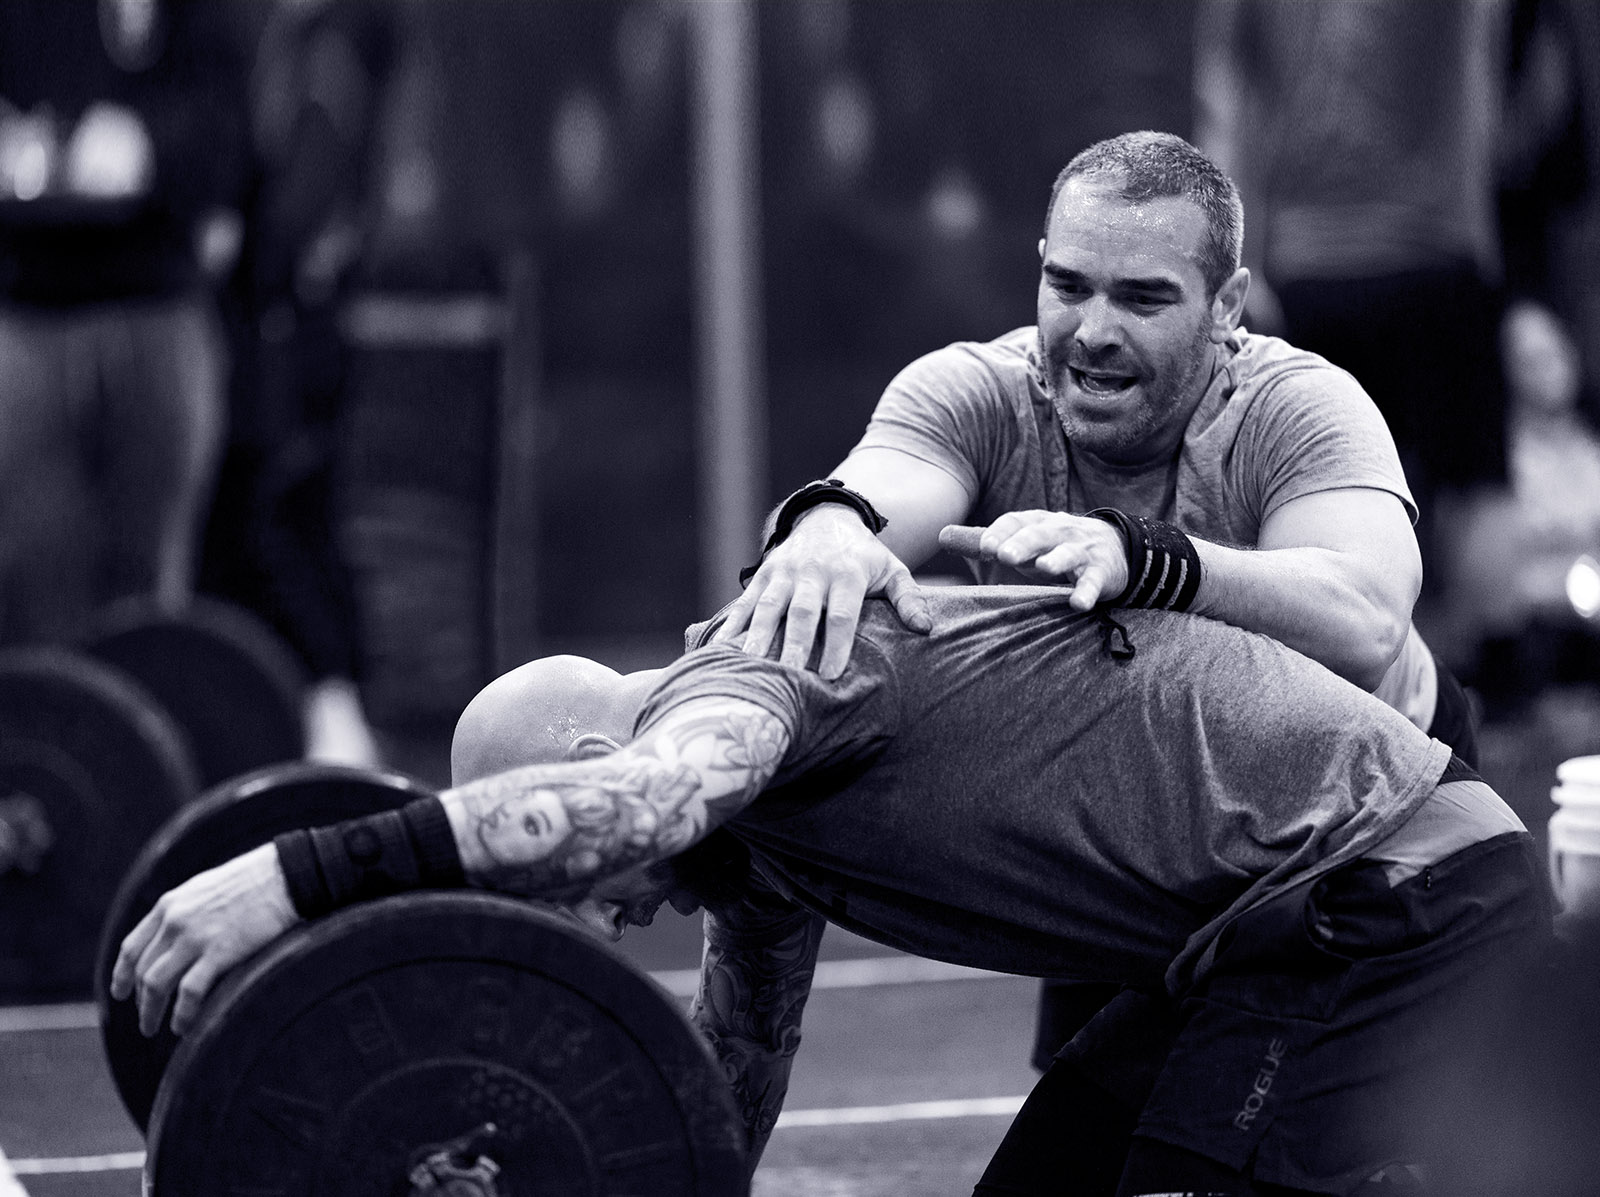 Masters male crossfit athlete exhausted after WOD